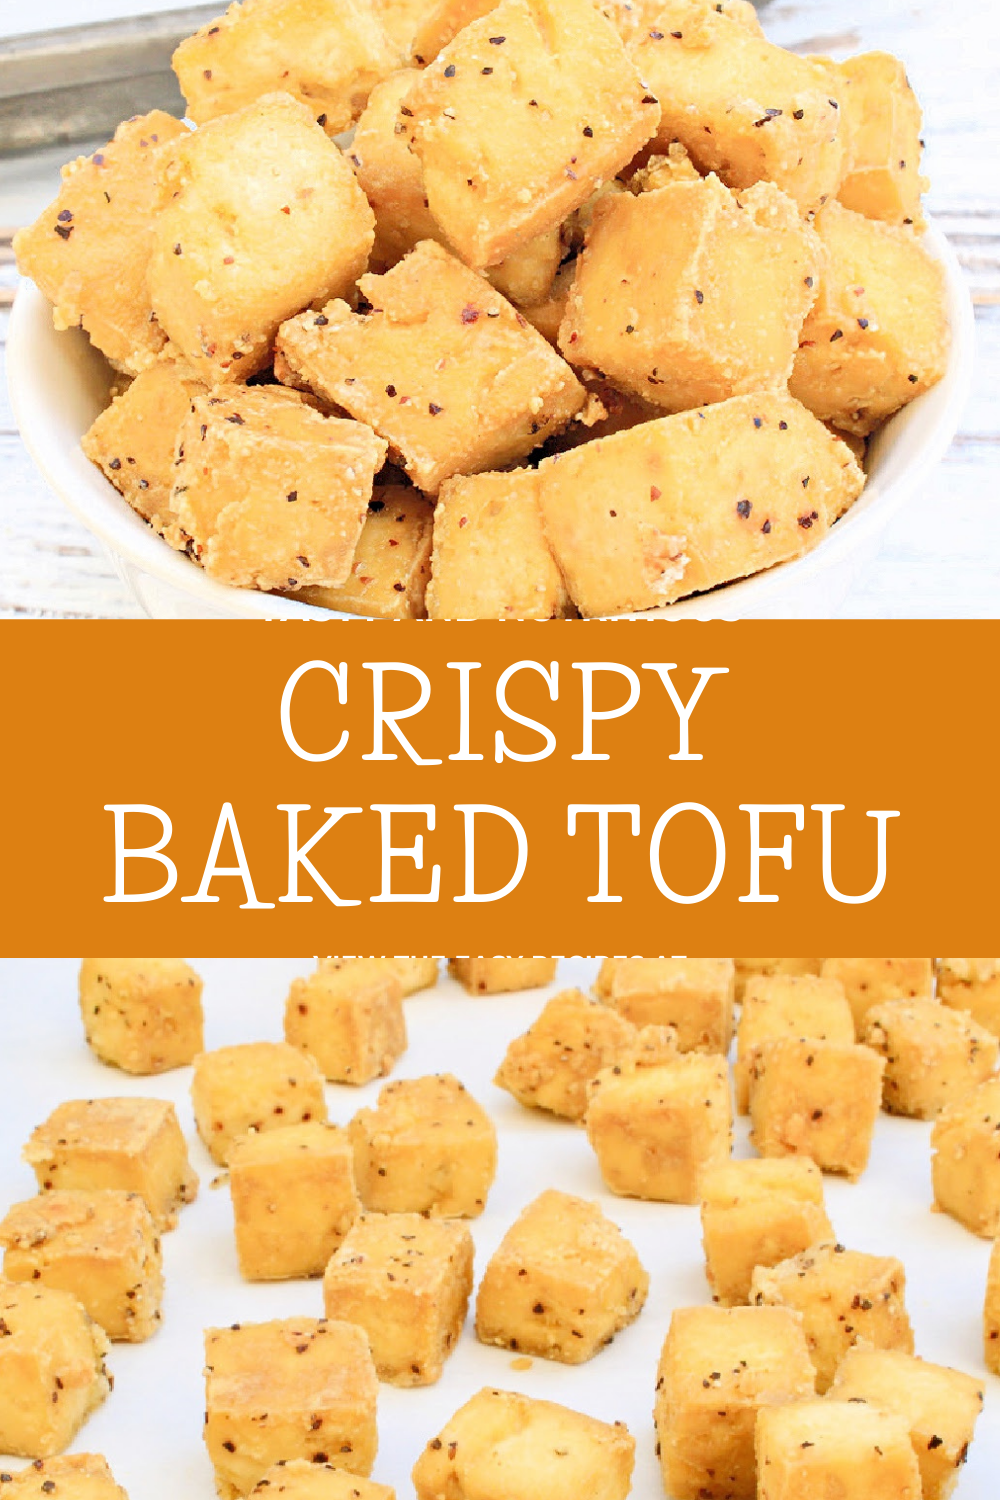 Crispy Baked Tofu ~ Cubed tofu tossed with simple seasonings and baked to golden perfection. Uncomplicated, flavorful, and so easy! via @thiswifecooks